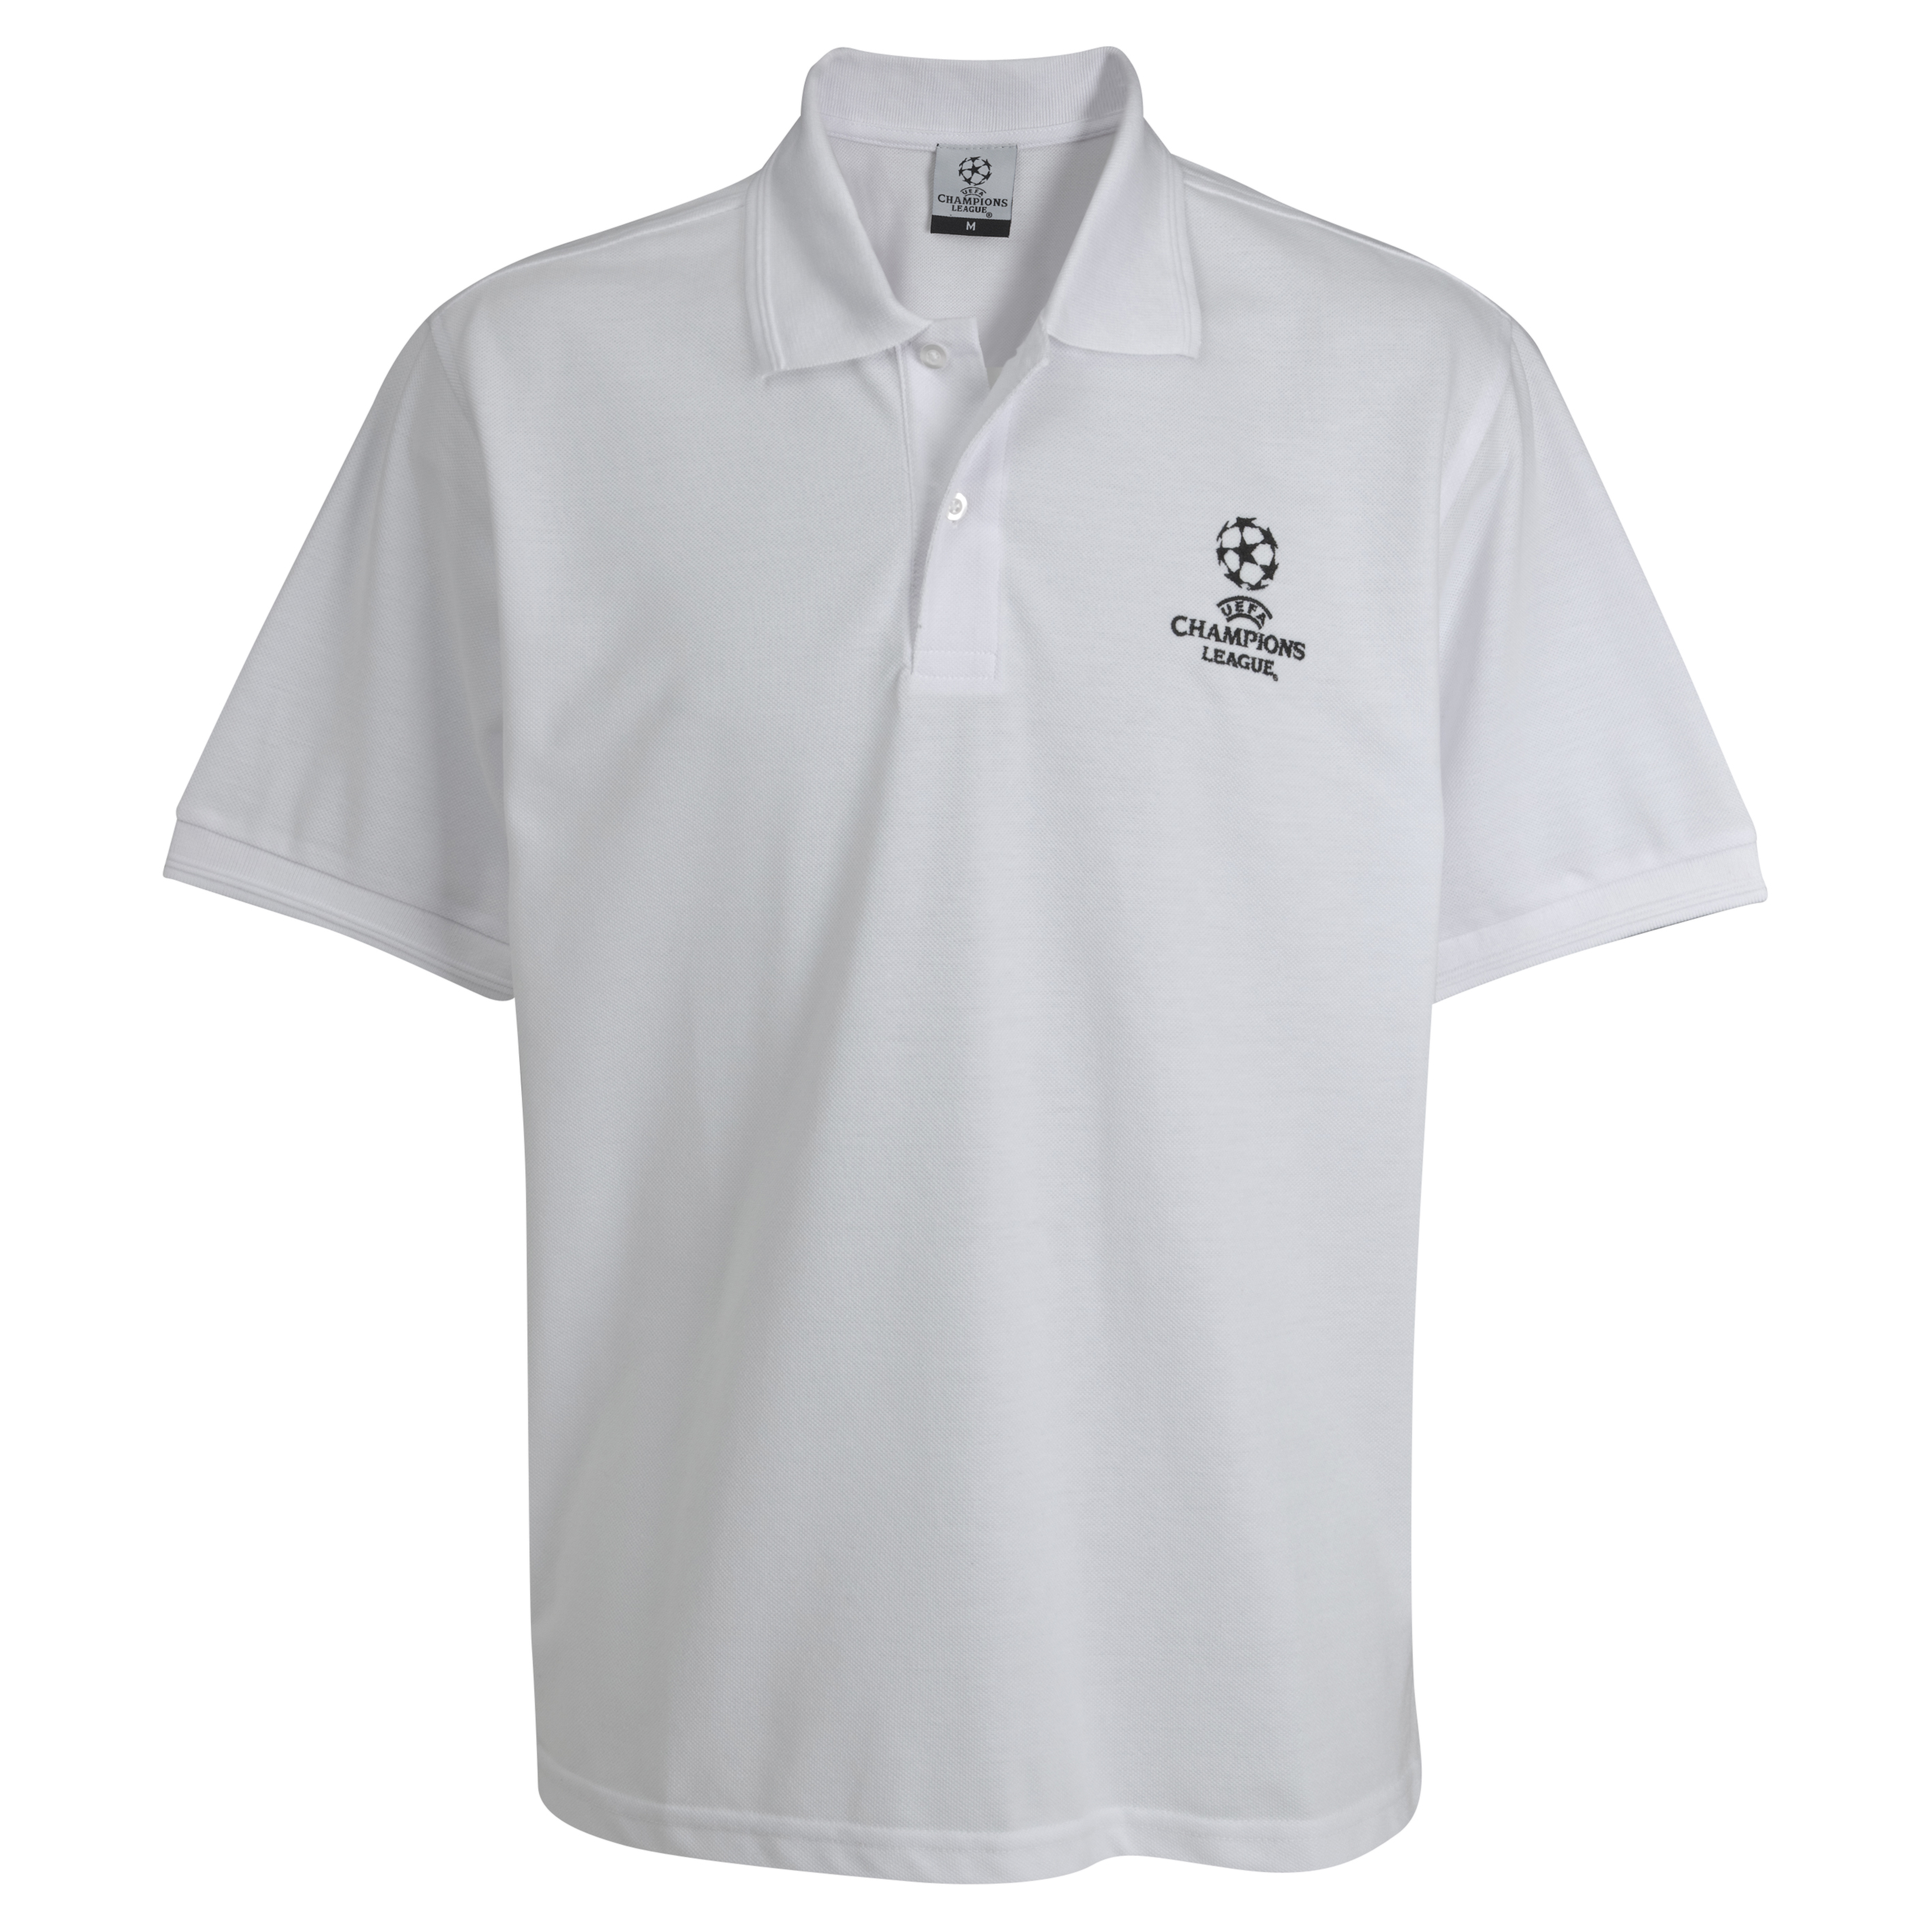 UEFA Champions League Pique Polo - White - Kids